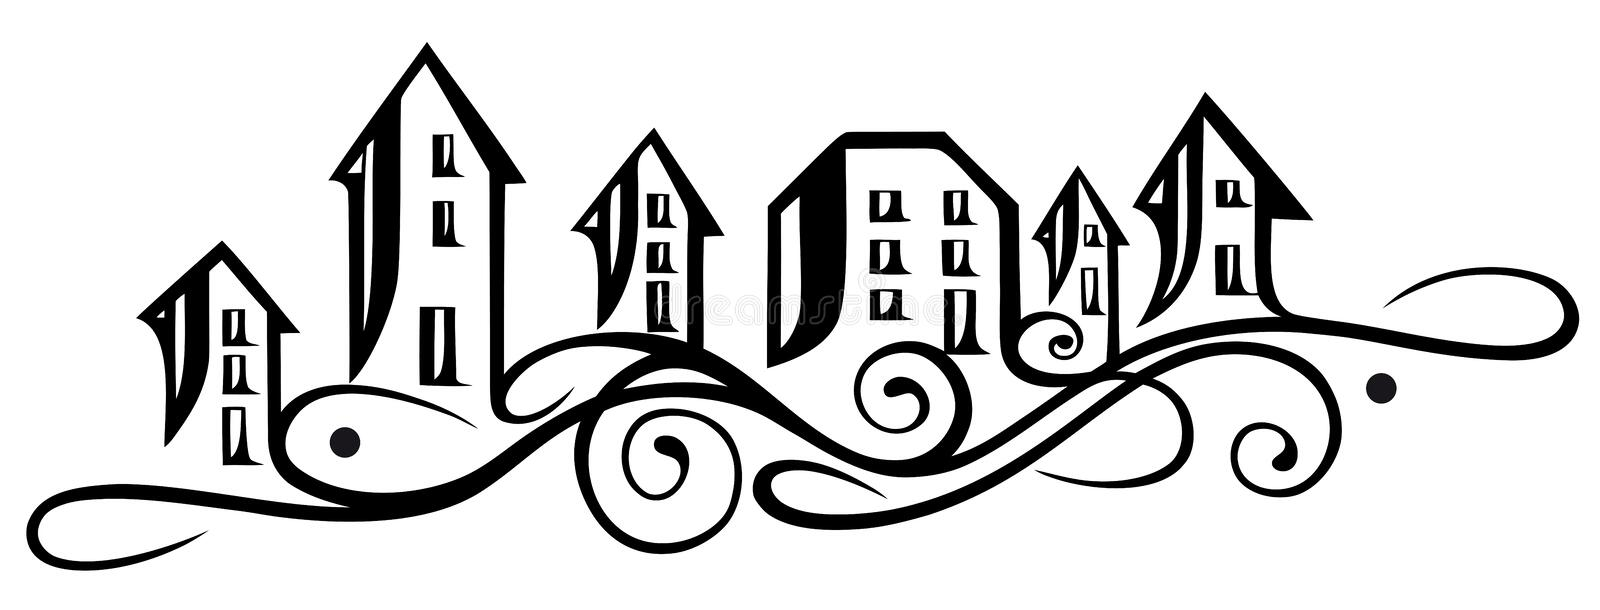 Houses silhouette royalty free illustration